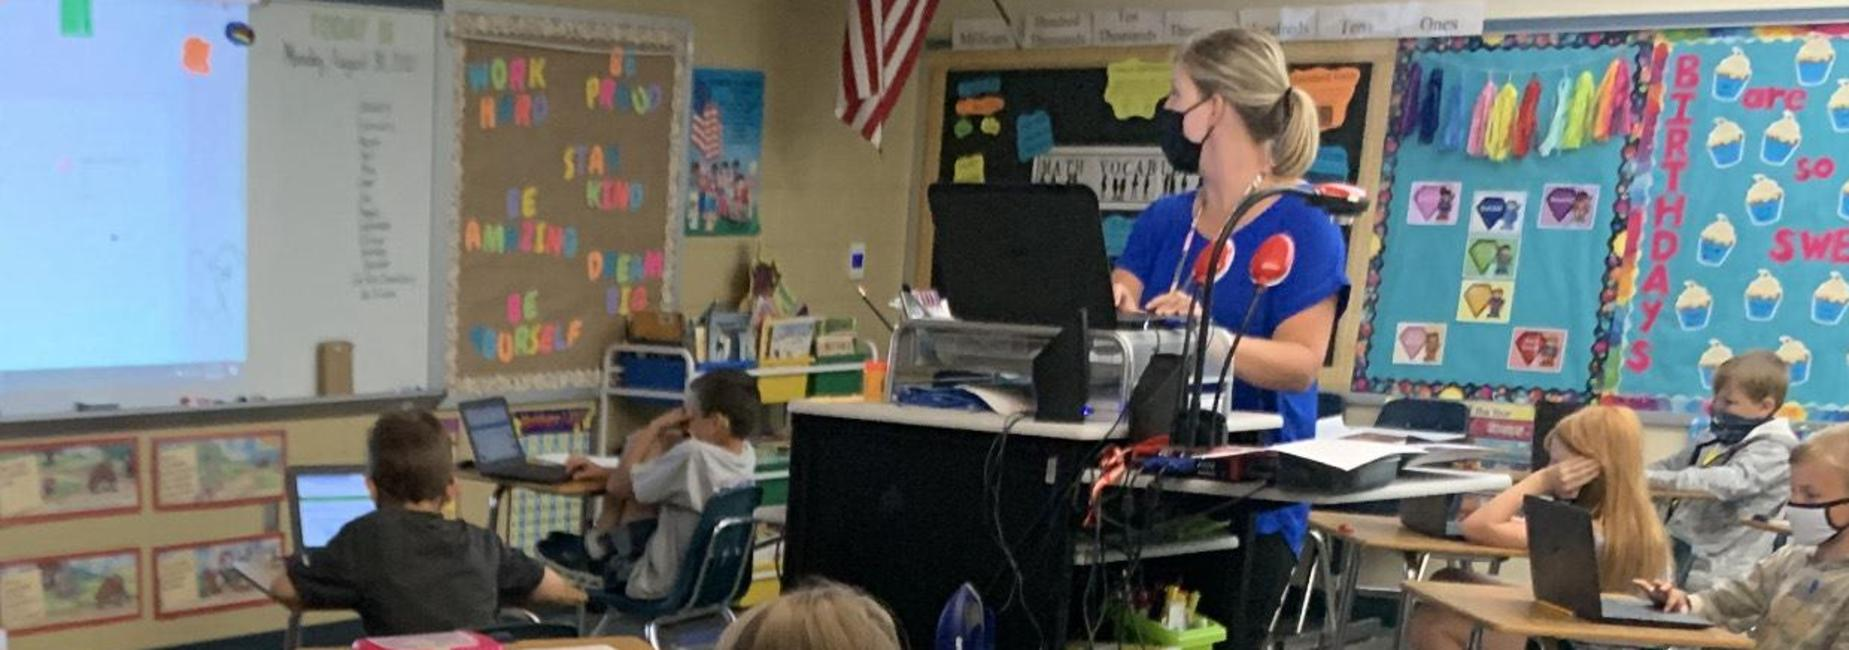 photo of Mrs. Trivette and her class using technology